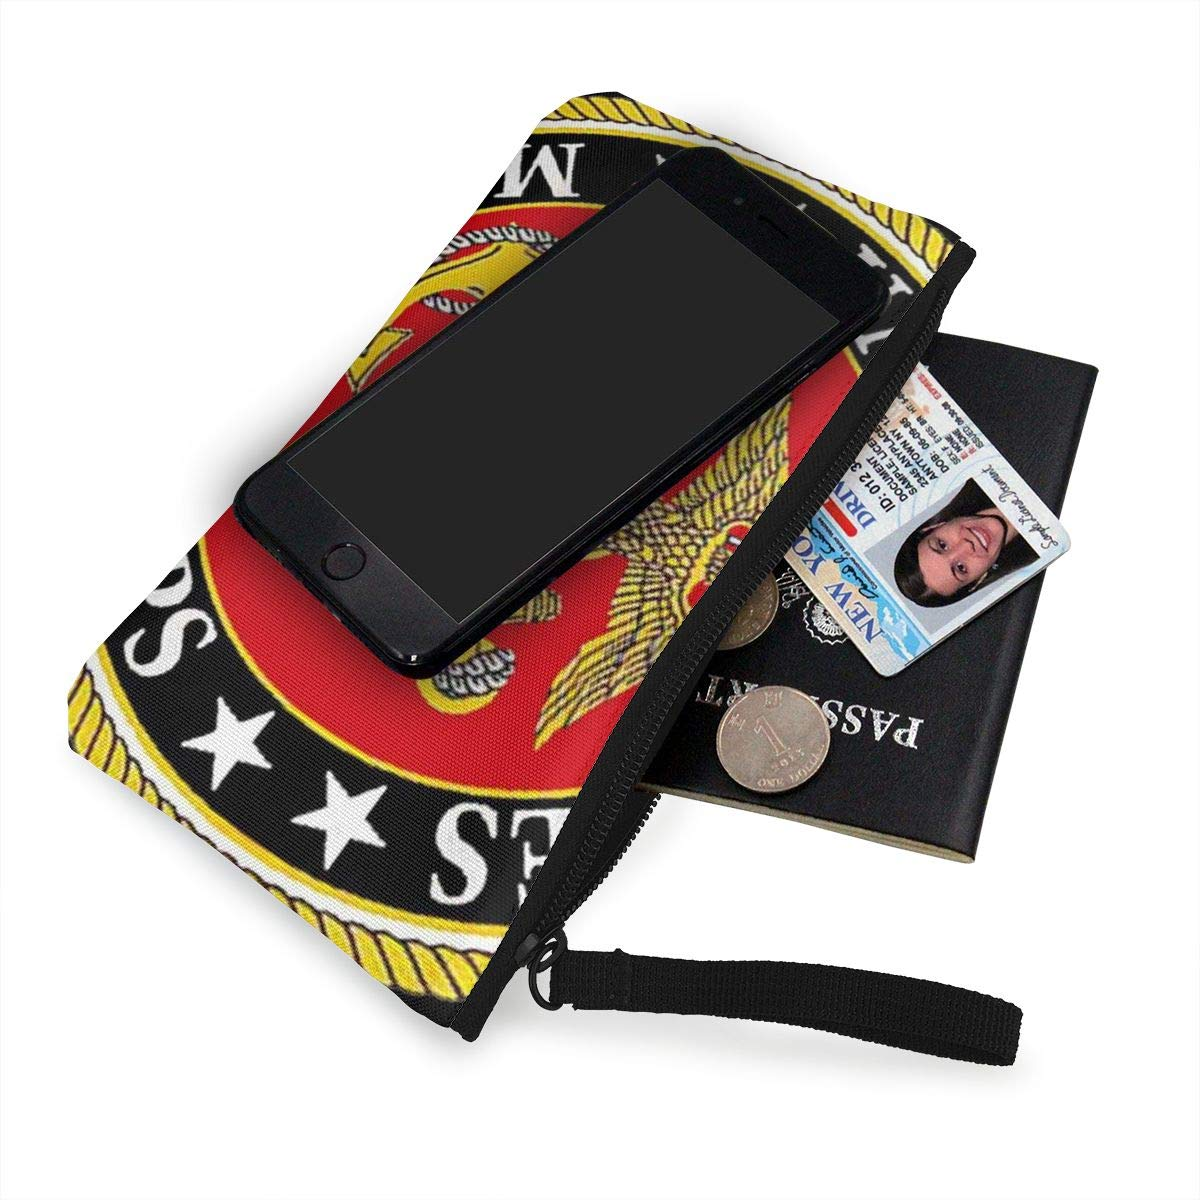 United States Marine Corps Womens Canvas Coin Purse Mini Change Wallet Pouch-Card Holder Phone Wallet Storage Bag,Pencil Pen Case